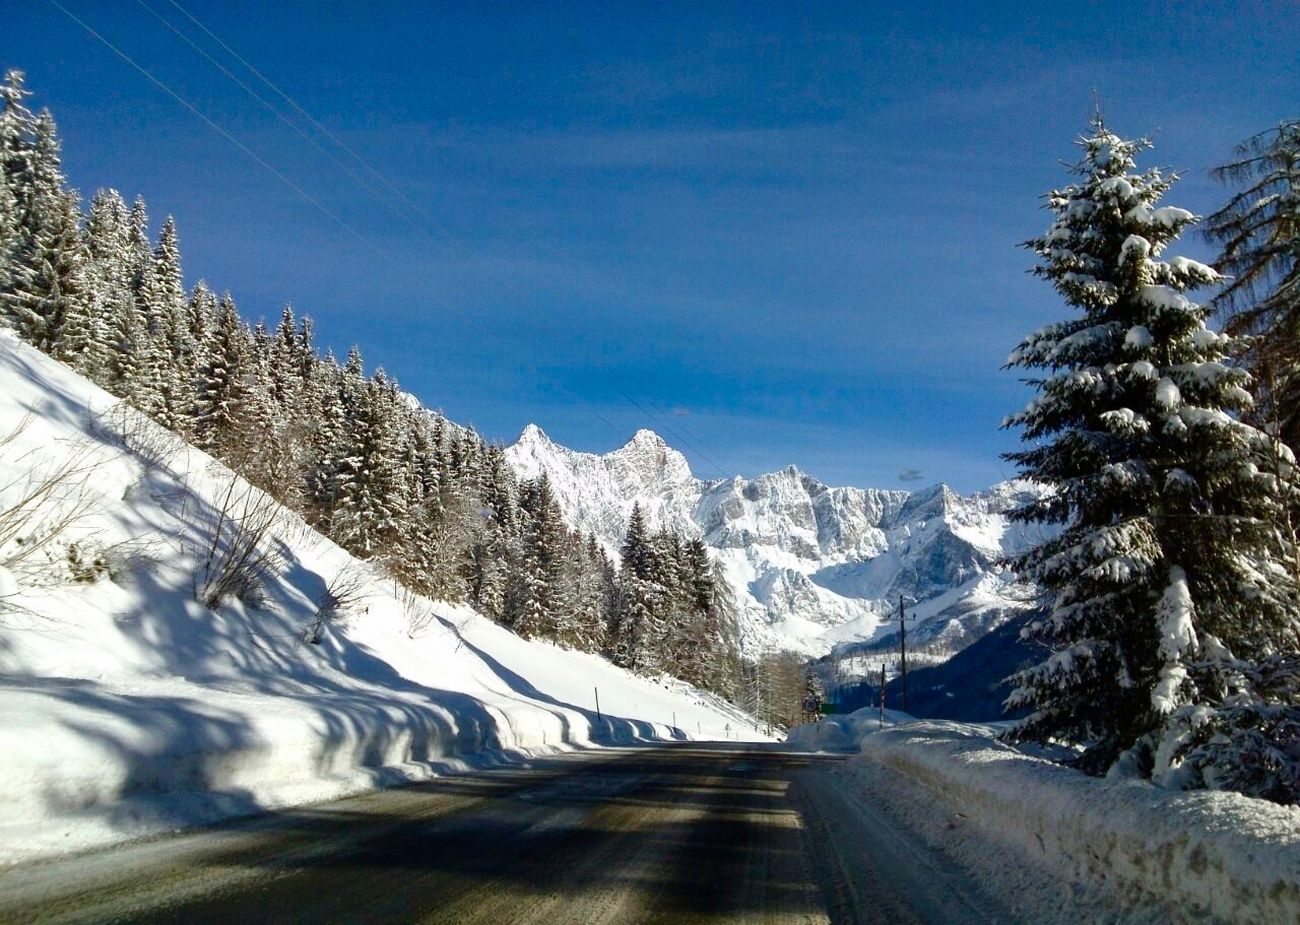 Austria Beauty In Nature Cold Temperature Day Landscape Mountain Mountain Range Nature No People Outdoors Road Scenics Sky Snow The Way Forward Tranquil Scene Tranquility Tree Winding Road Winter